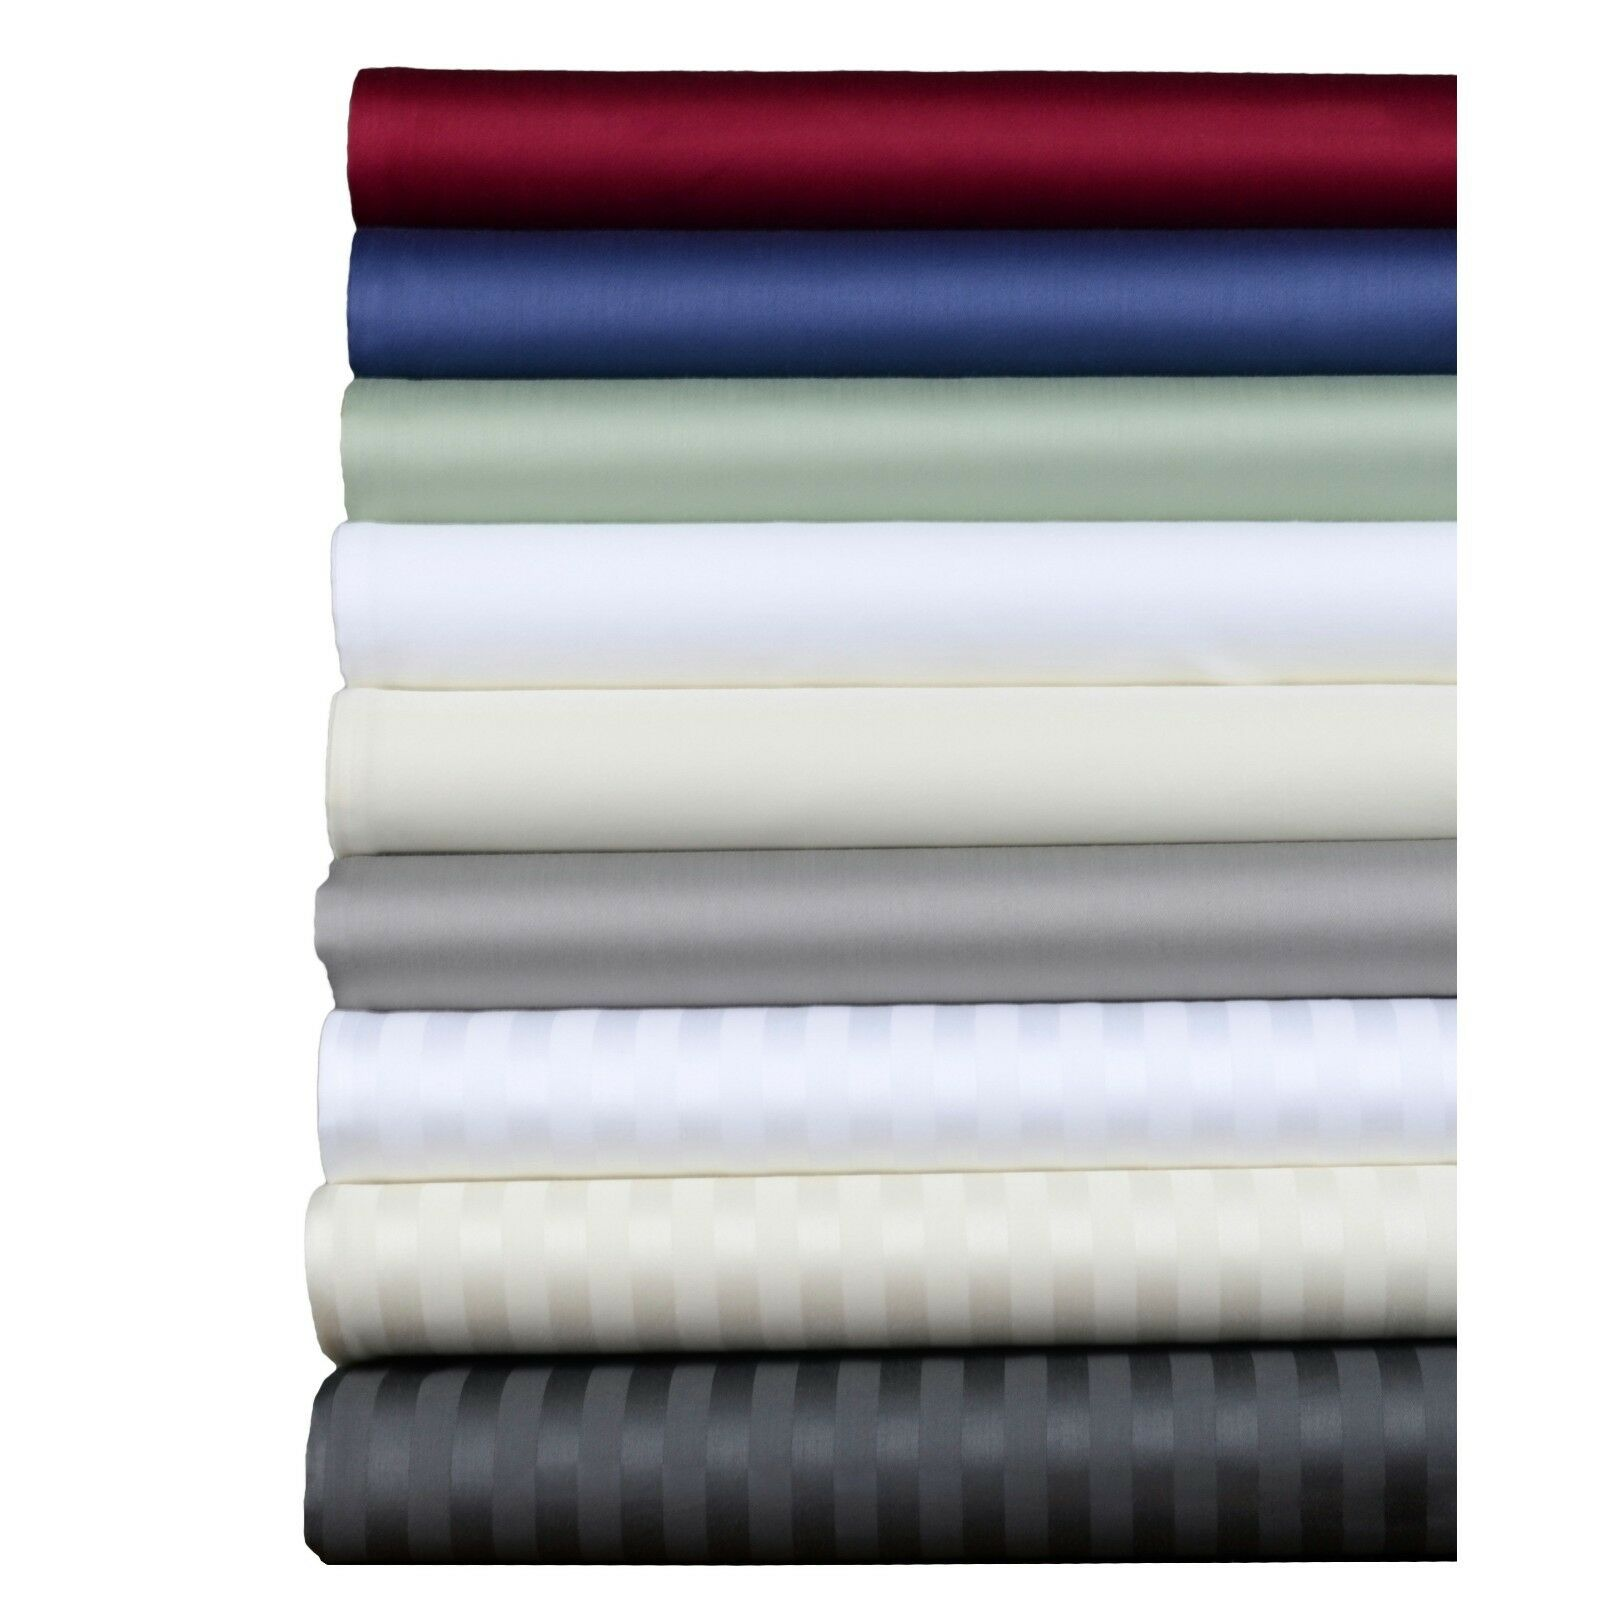 Ultra Soft 6 PCs Sheet Set 1000 TC Egyptian Cotton Queen Size Solid Strip colors